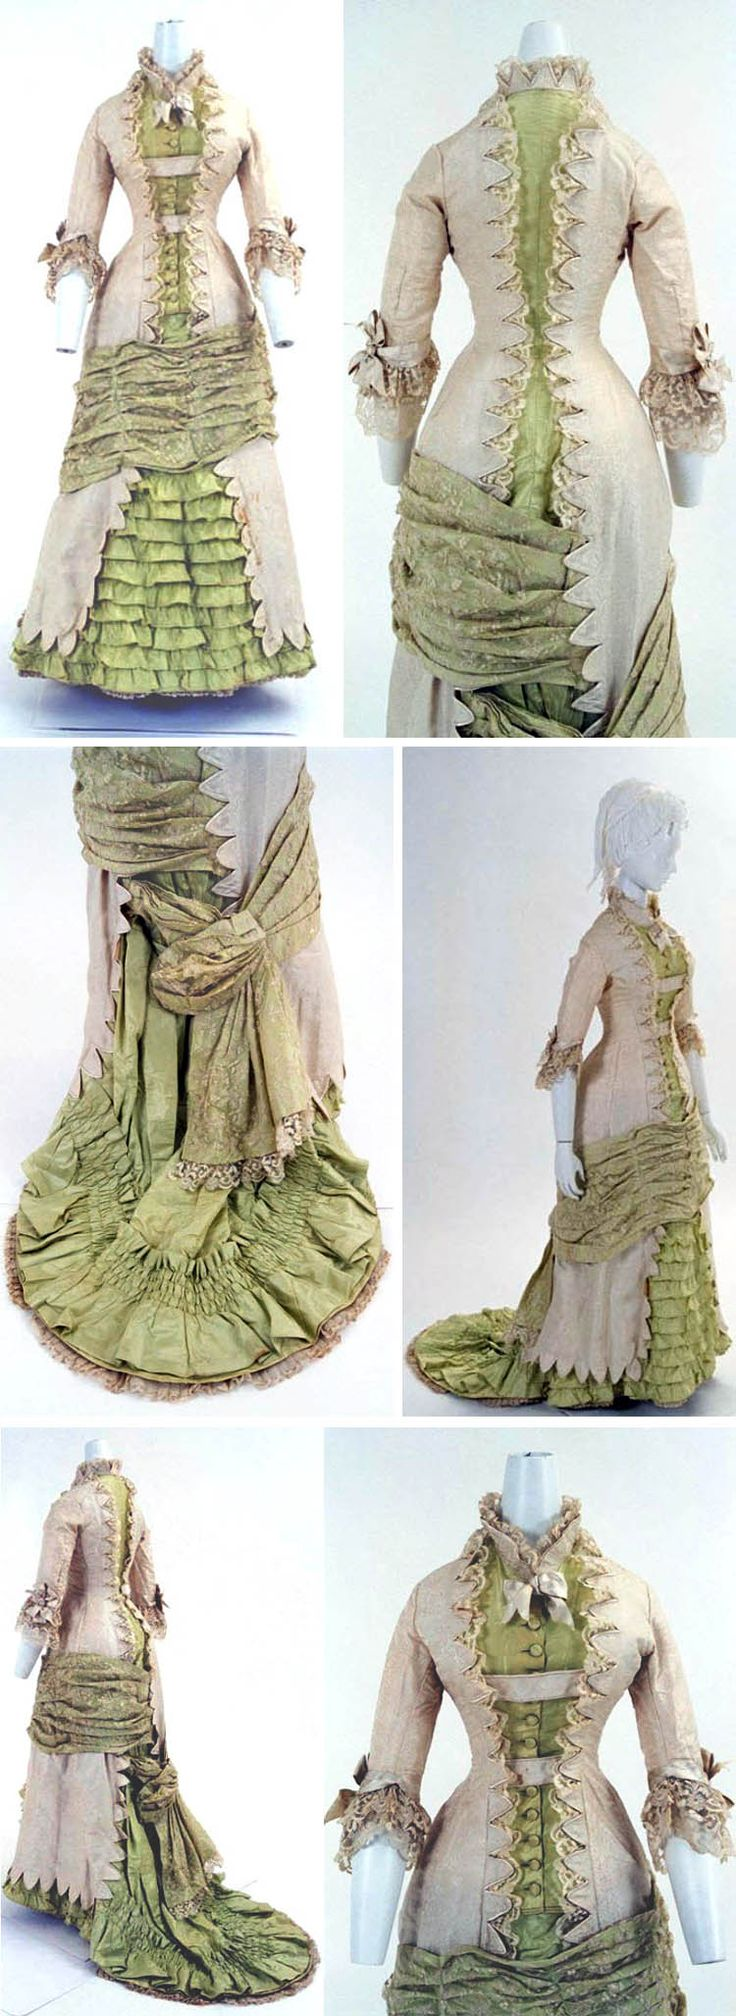 Dress, French, ca. 1880s. Princess-line, one piece. Bunka Costume Museum